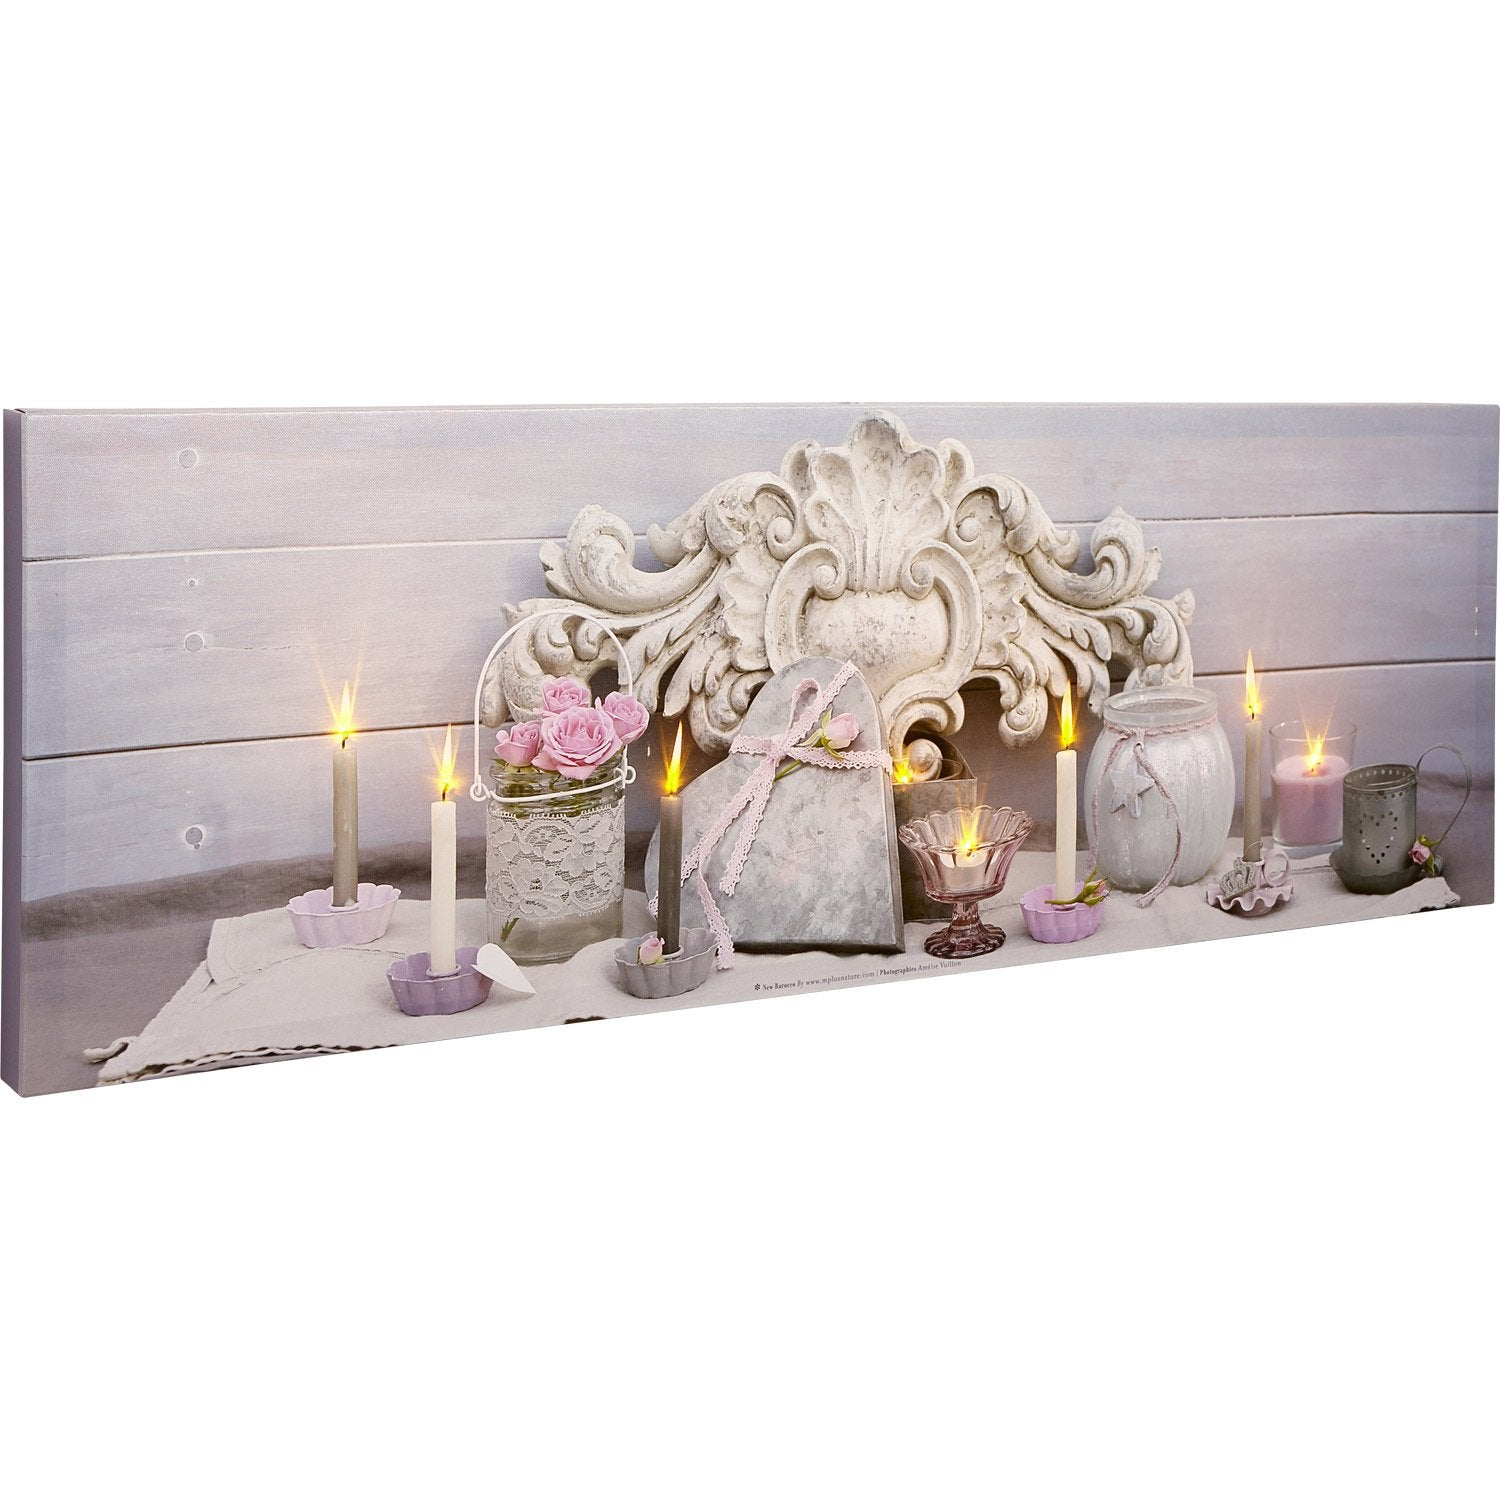 toile led coeur roses roses bougies pots 90x30 cm. Black Bedroom Furniture Sets. Home Design Ideas